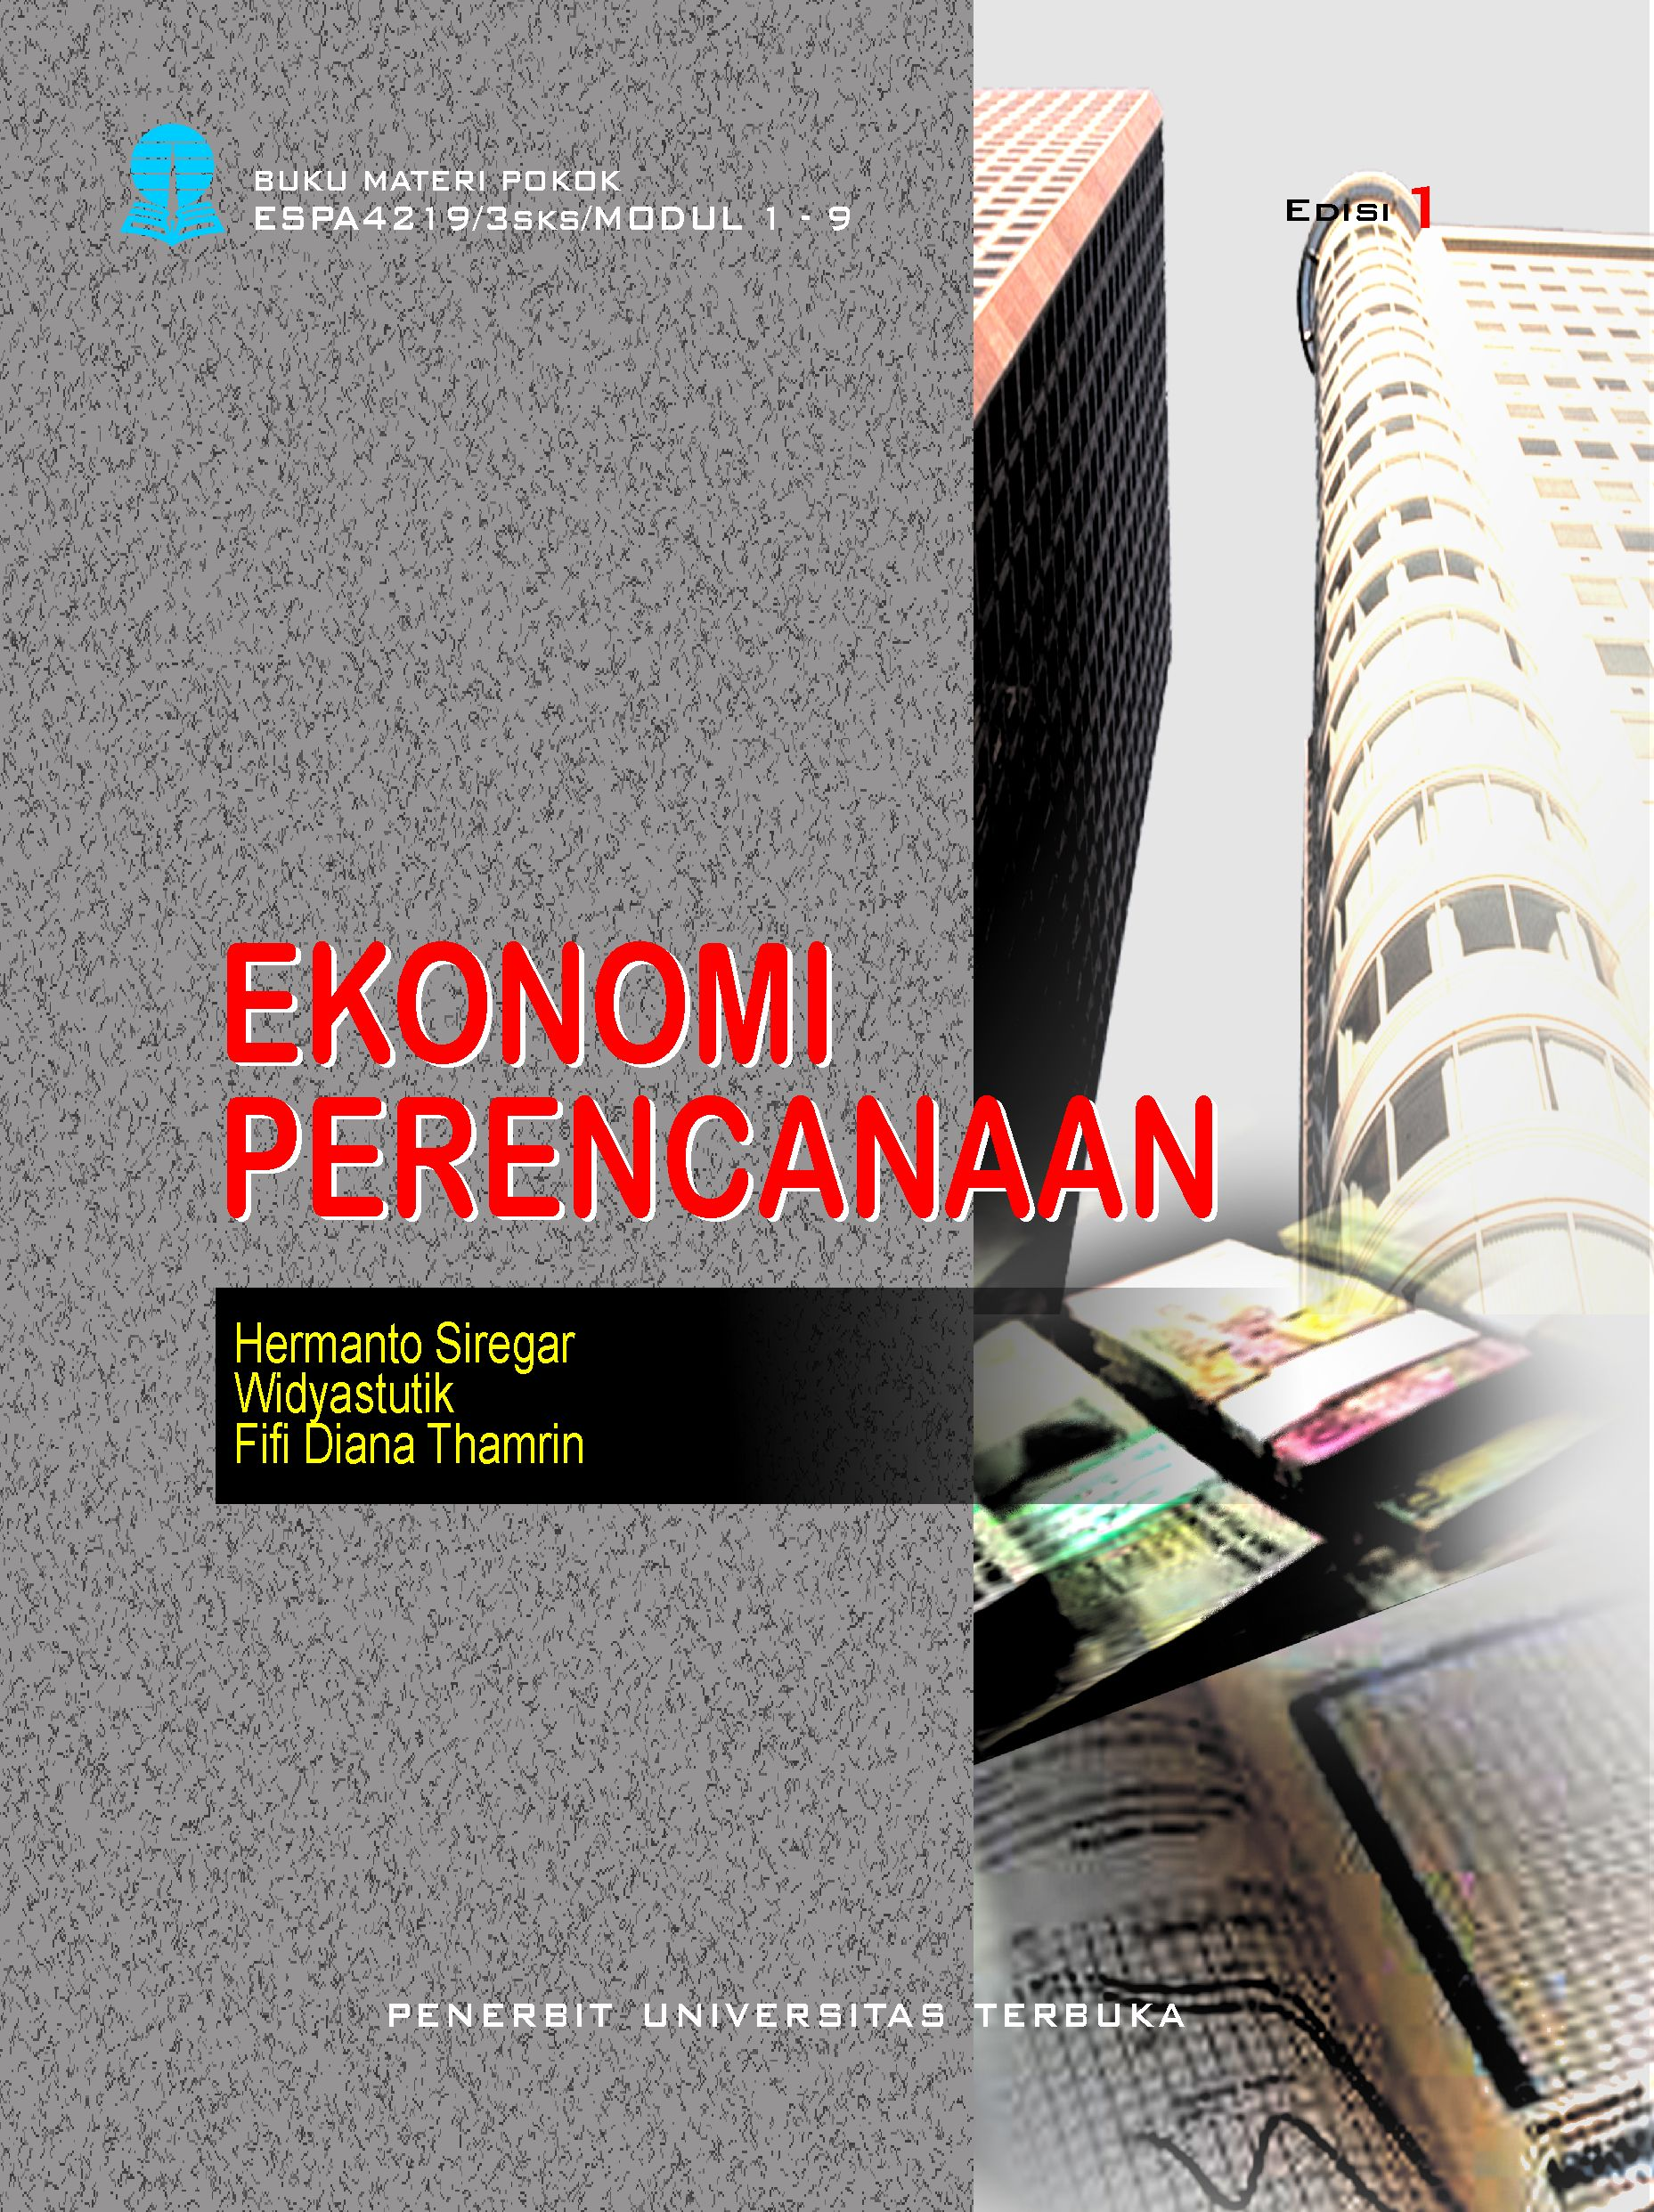 Ebook ekonomi download statistika